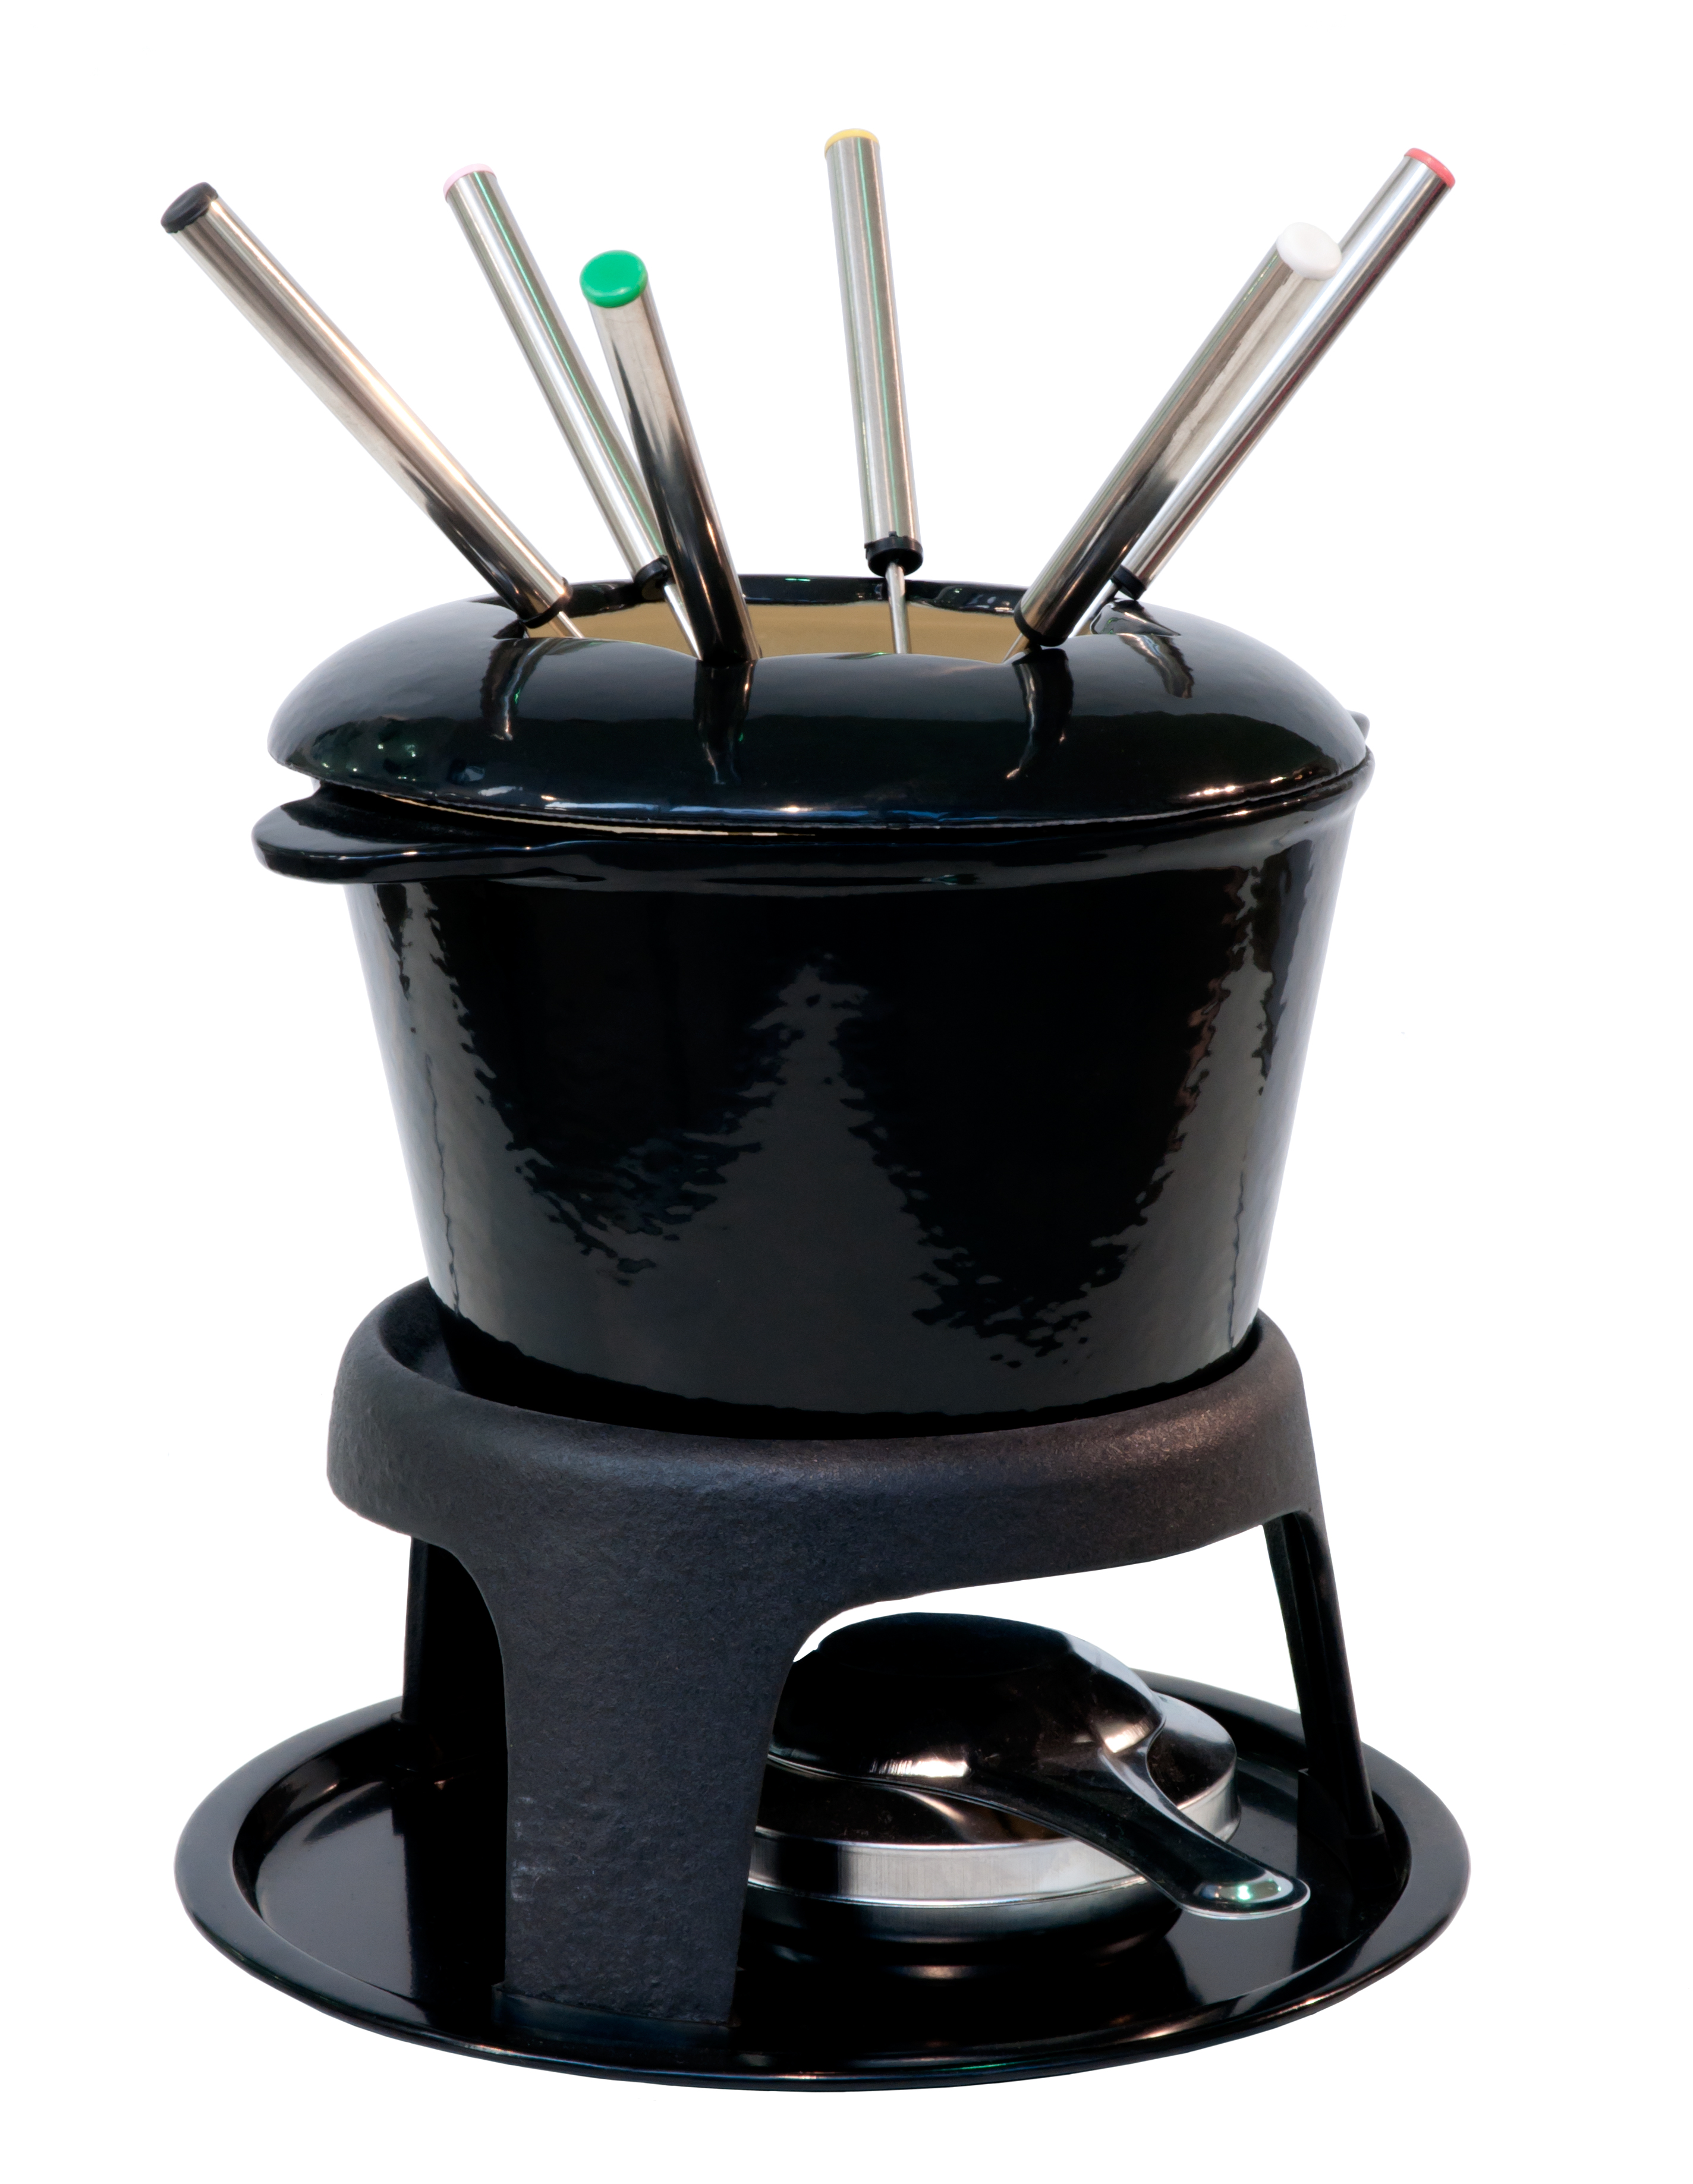 Black fondue bowl set. Isolated